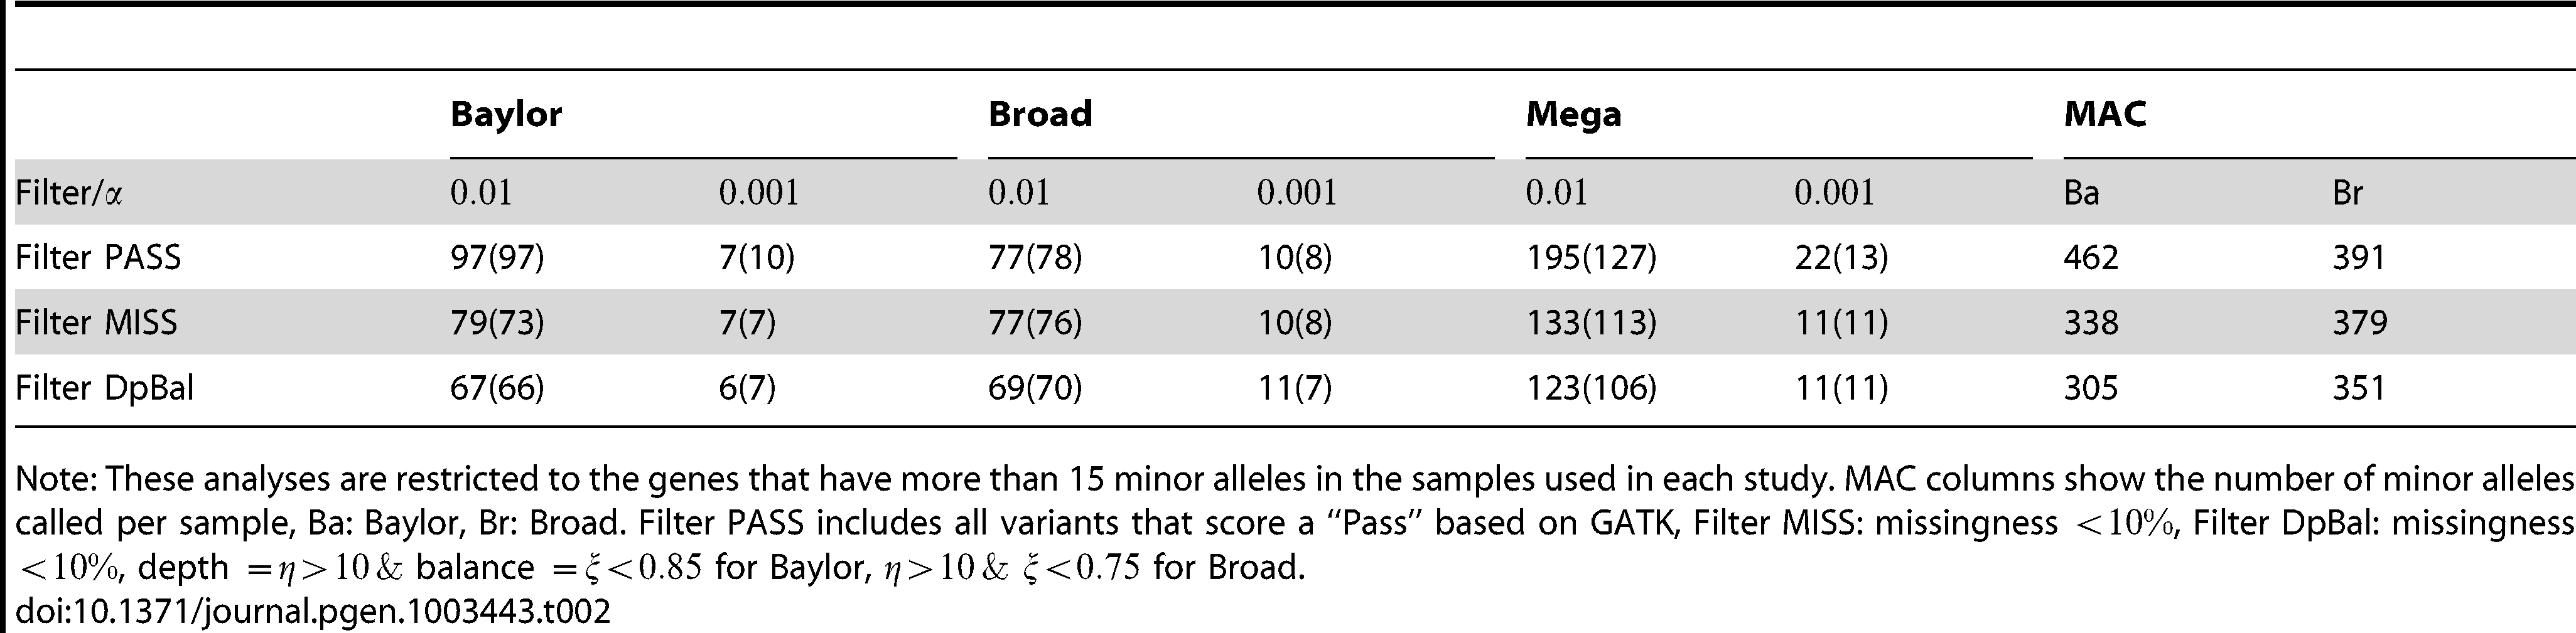 Number of significant genes (and expected number) under different filters.